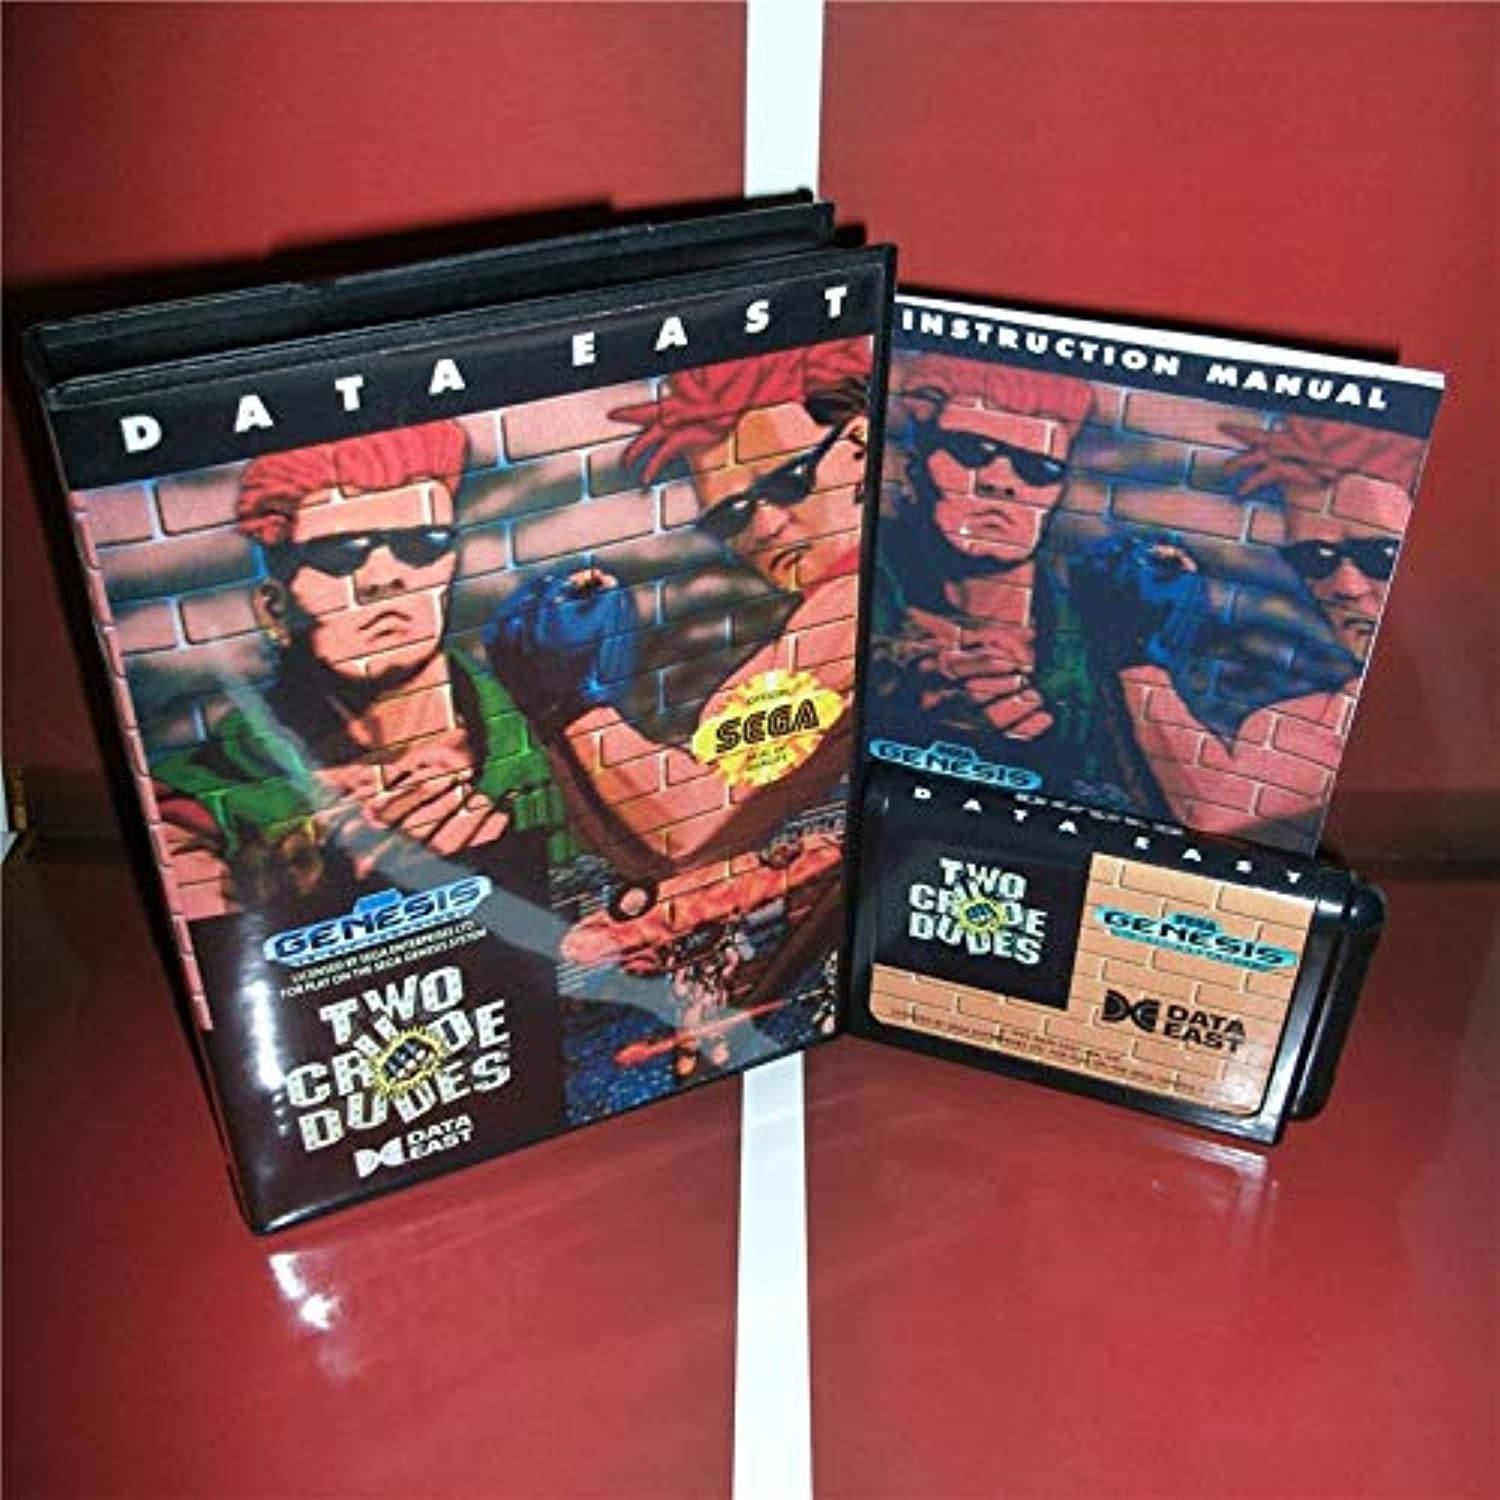 Value-Smart-ToysTwo Crude Dudes US Cover with Box and Manual for Sega Megadrive Genesis Video Game Console 16 bit MD Card